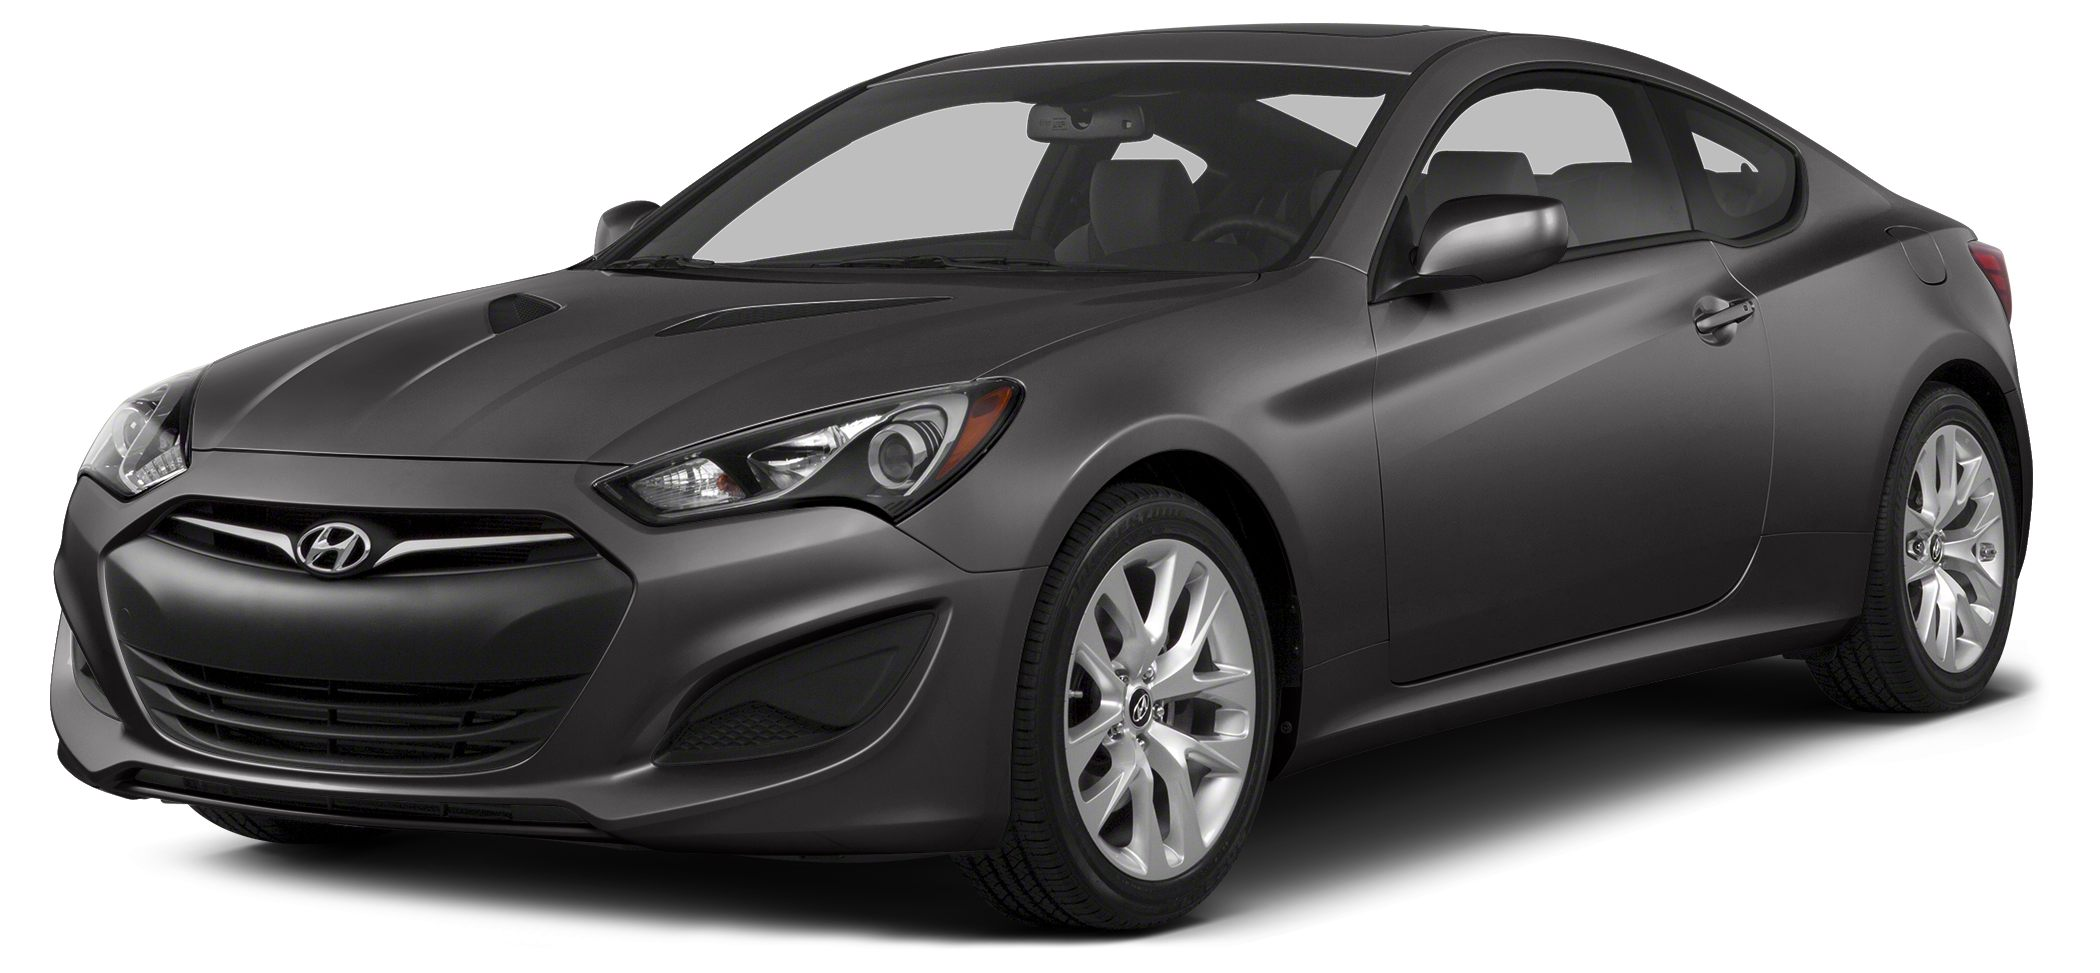 2015 Hyundai Genesis Coupe 38 Ultimate Must finance with HMFC to collect all and full discounts